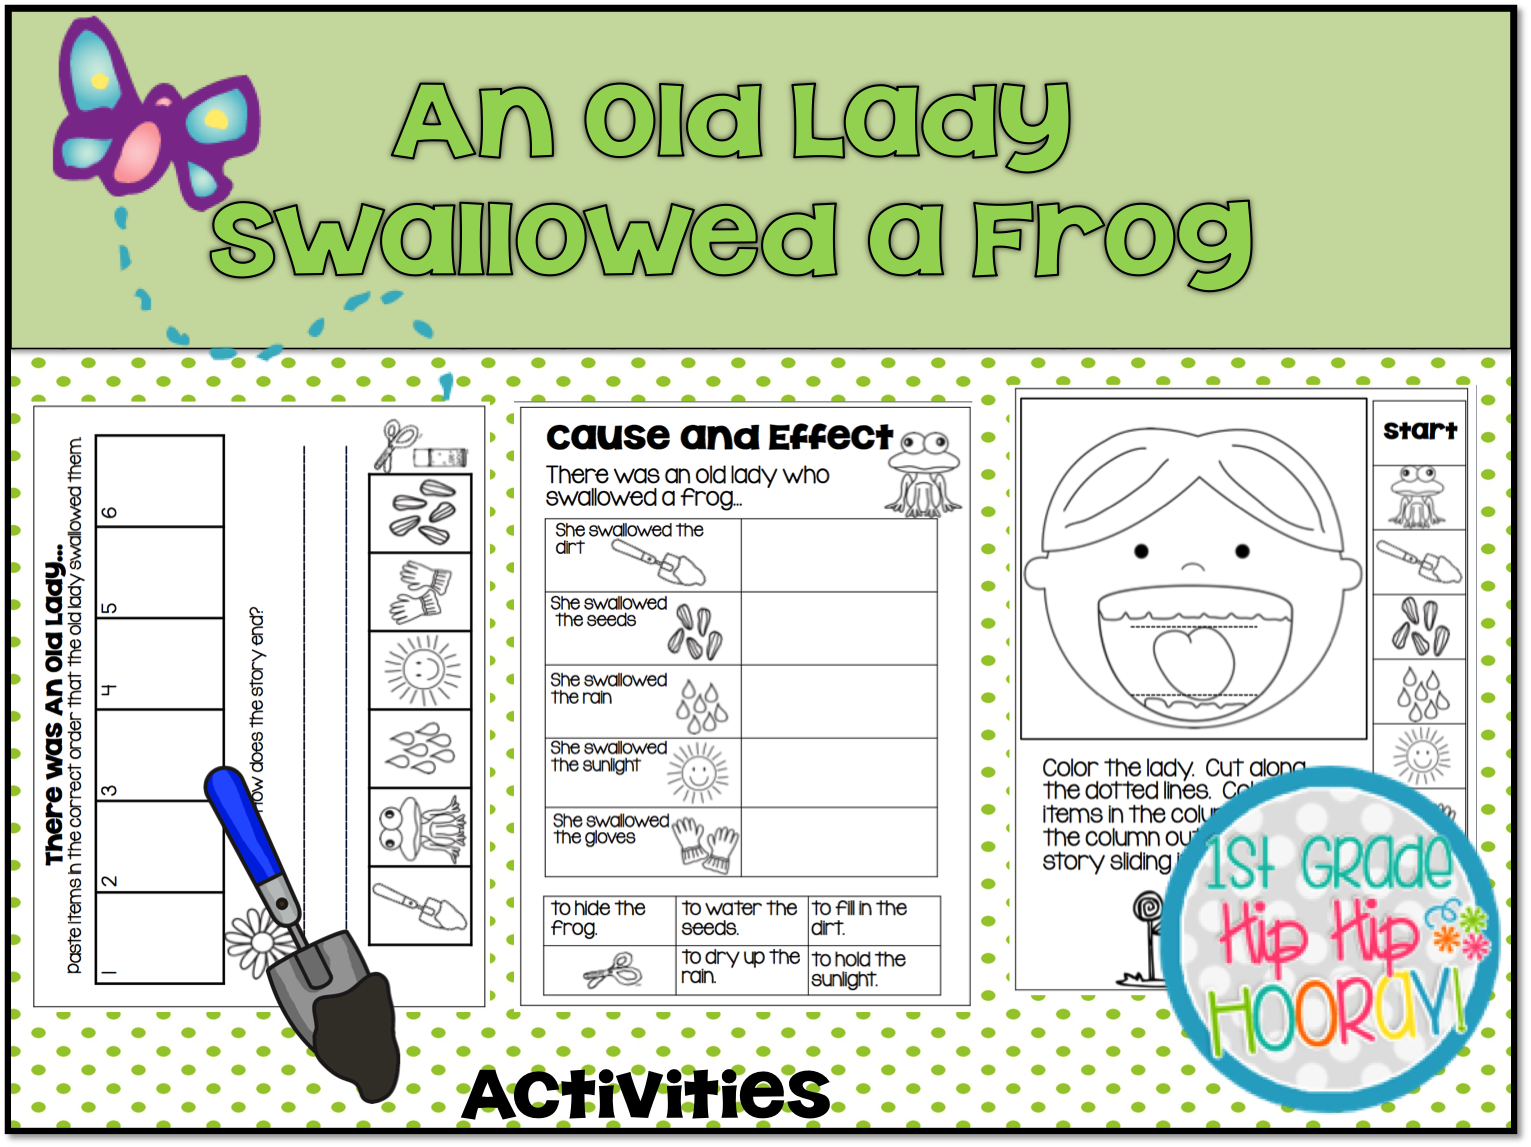 1st Grade Hip Hip Hooray Old Lady Who Swallowed A Frog